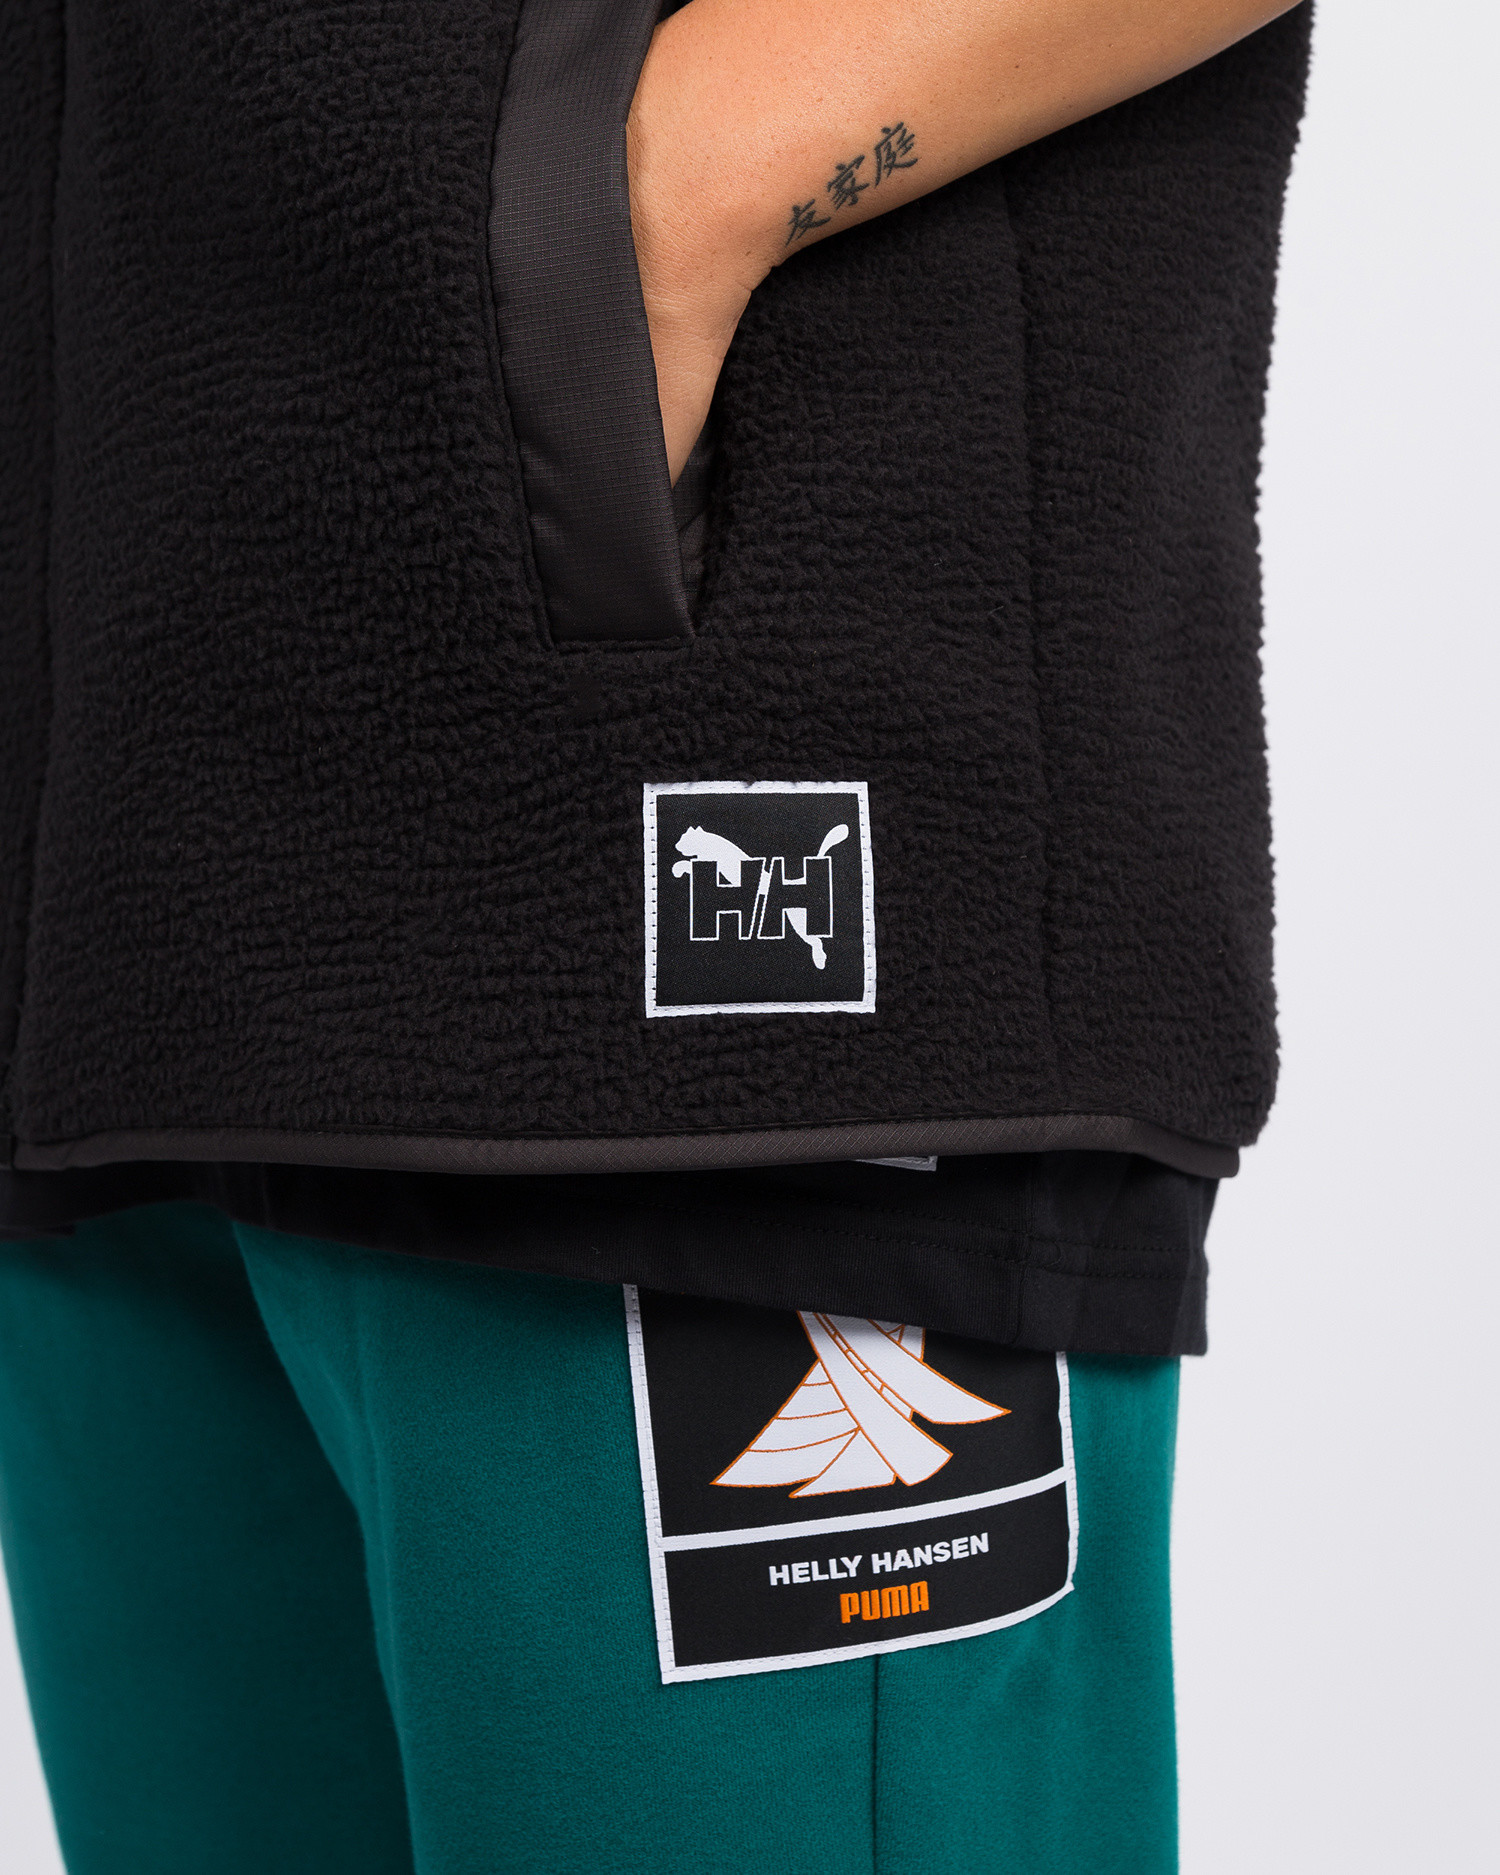 Puma x Helly Hansen Vest Black